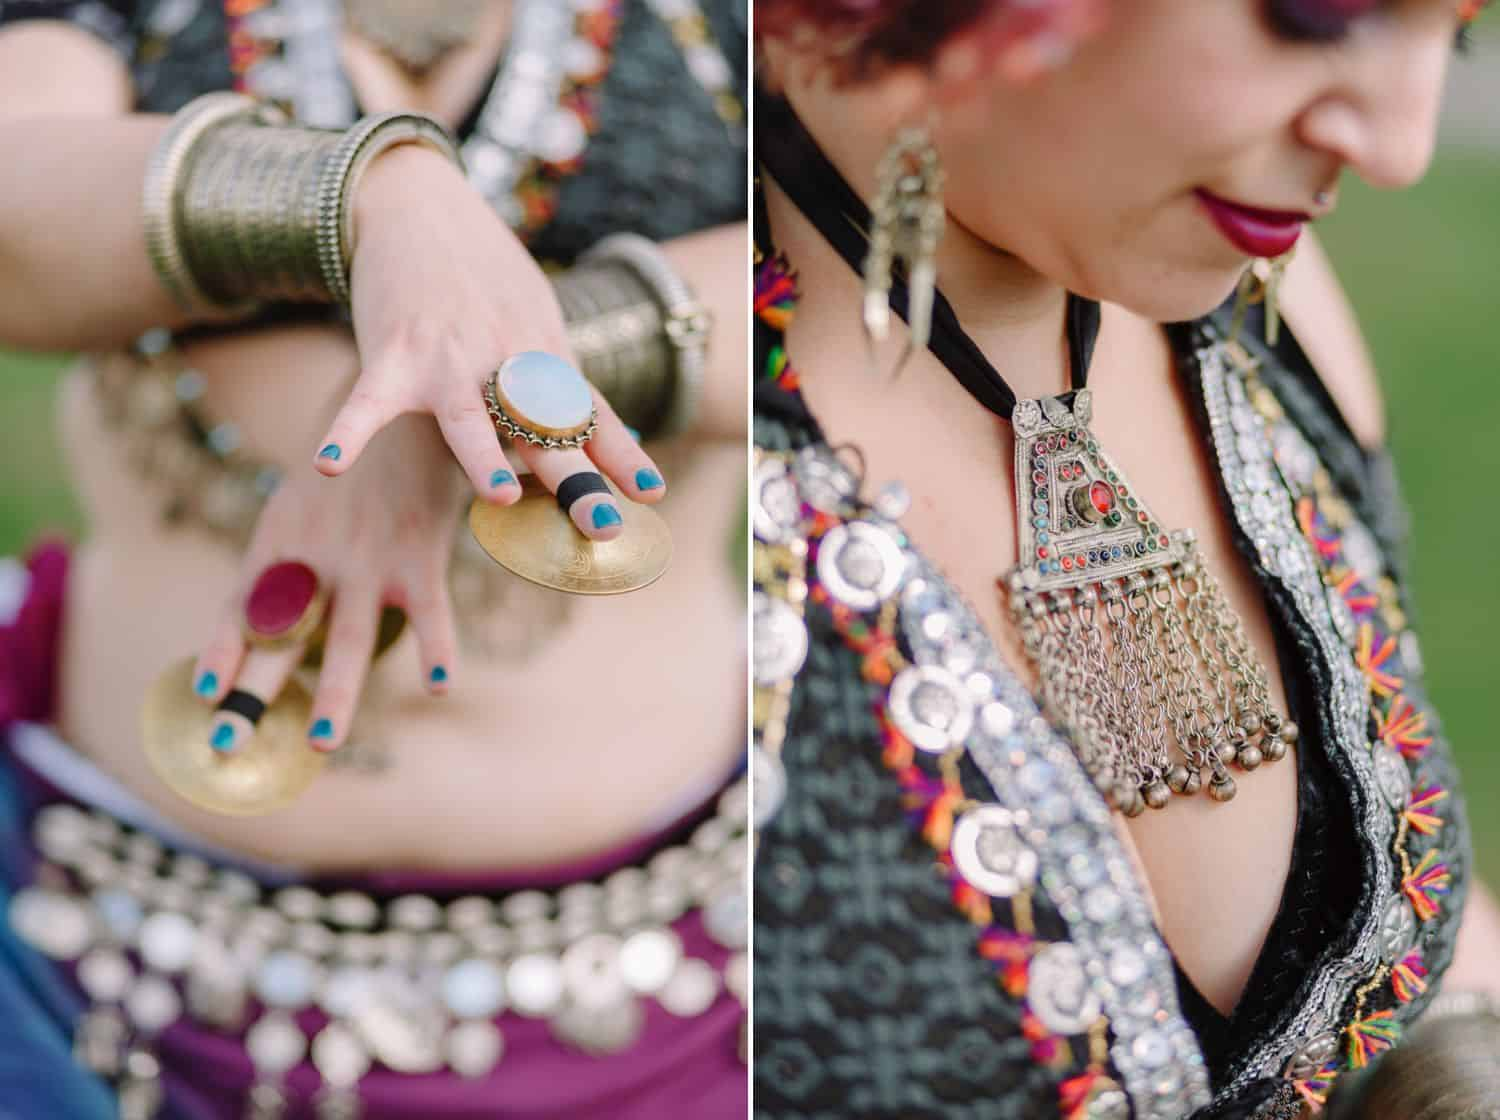 a belly dancer's hands and jewelry are depicted in close-up detail